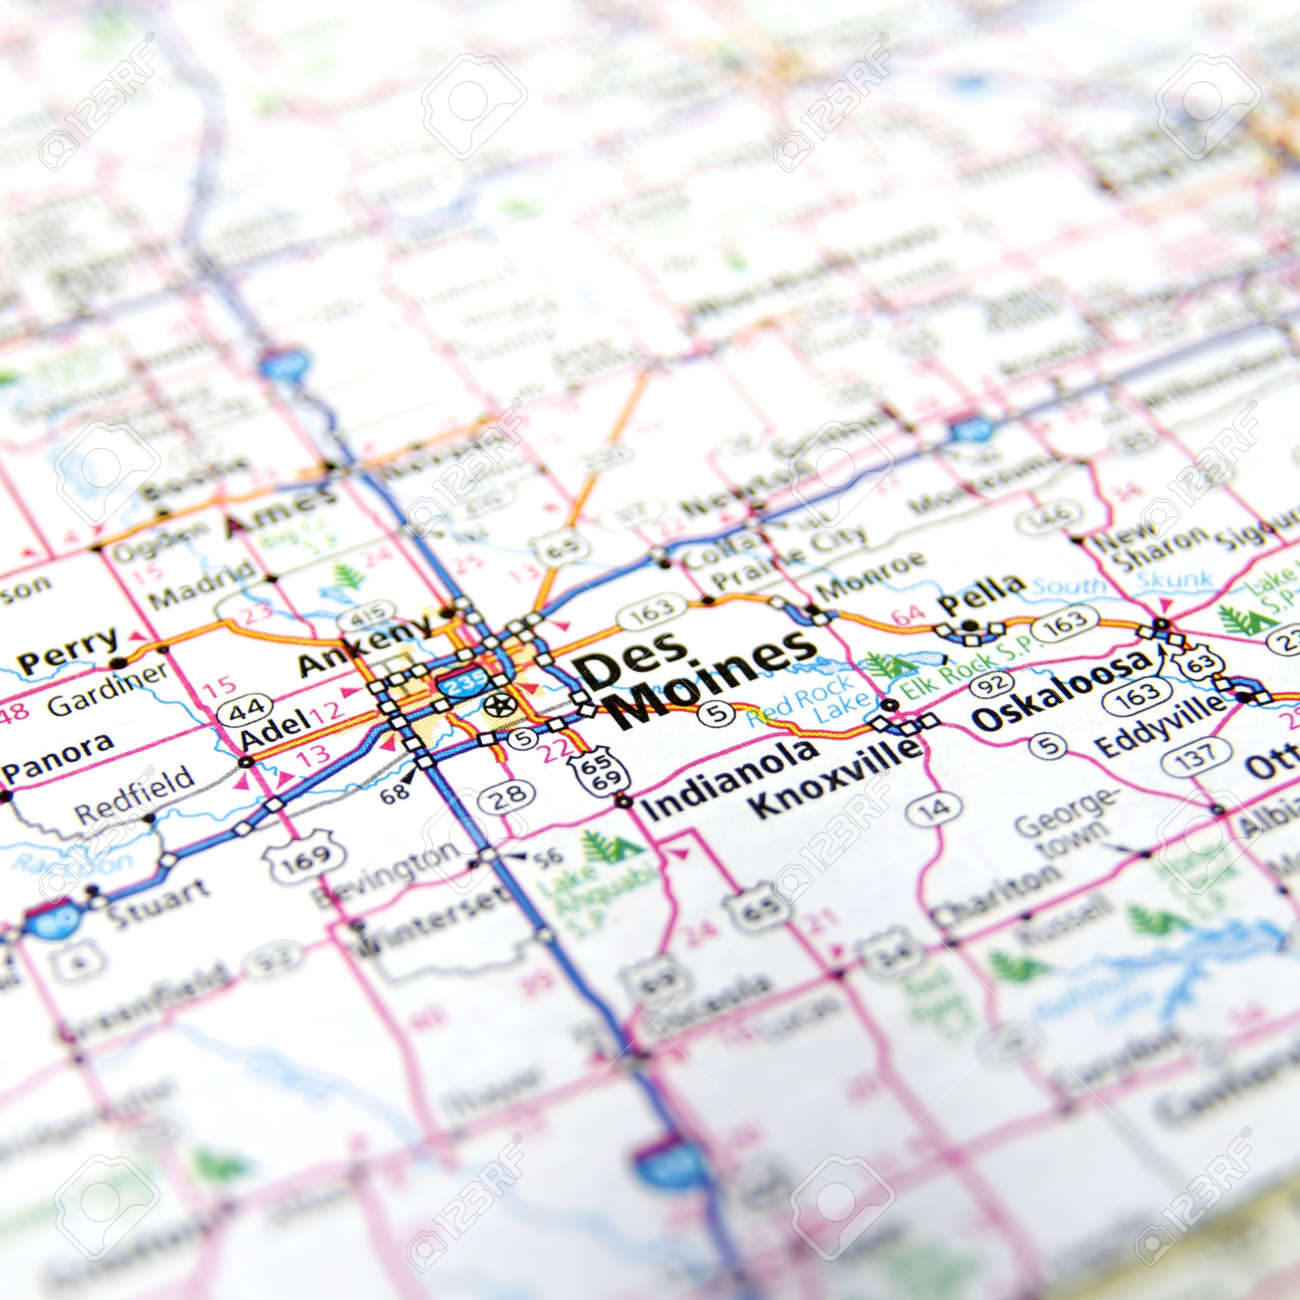 Close-Up Map Of Des Moines, Iowa Stock Photo, Picture And Royalty ...